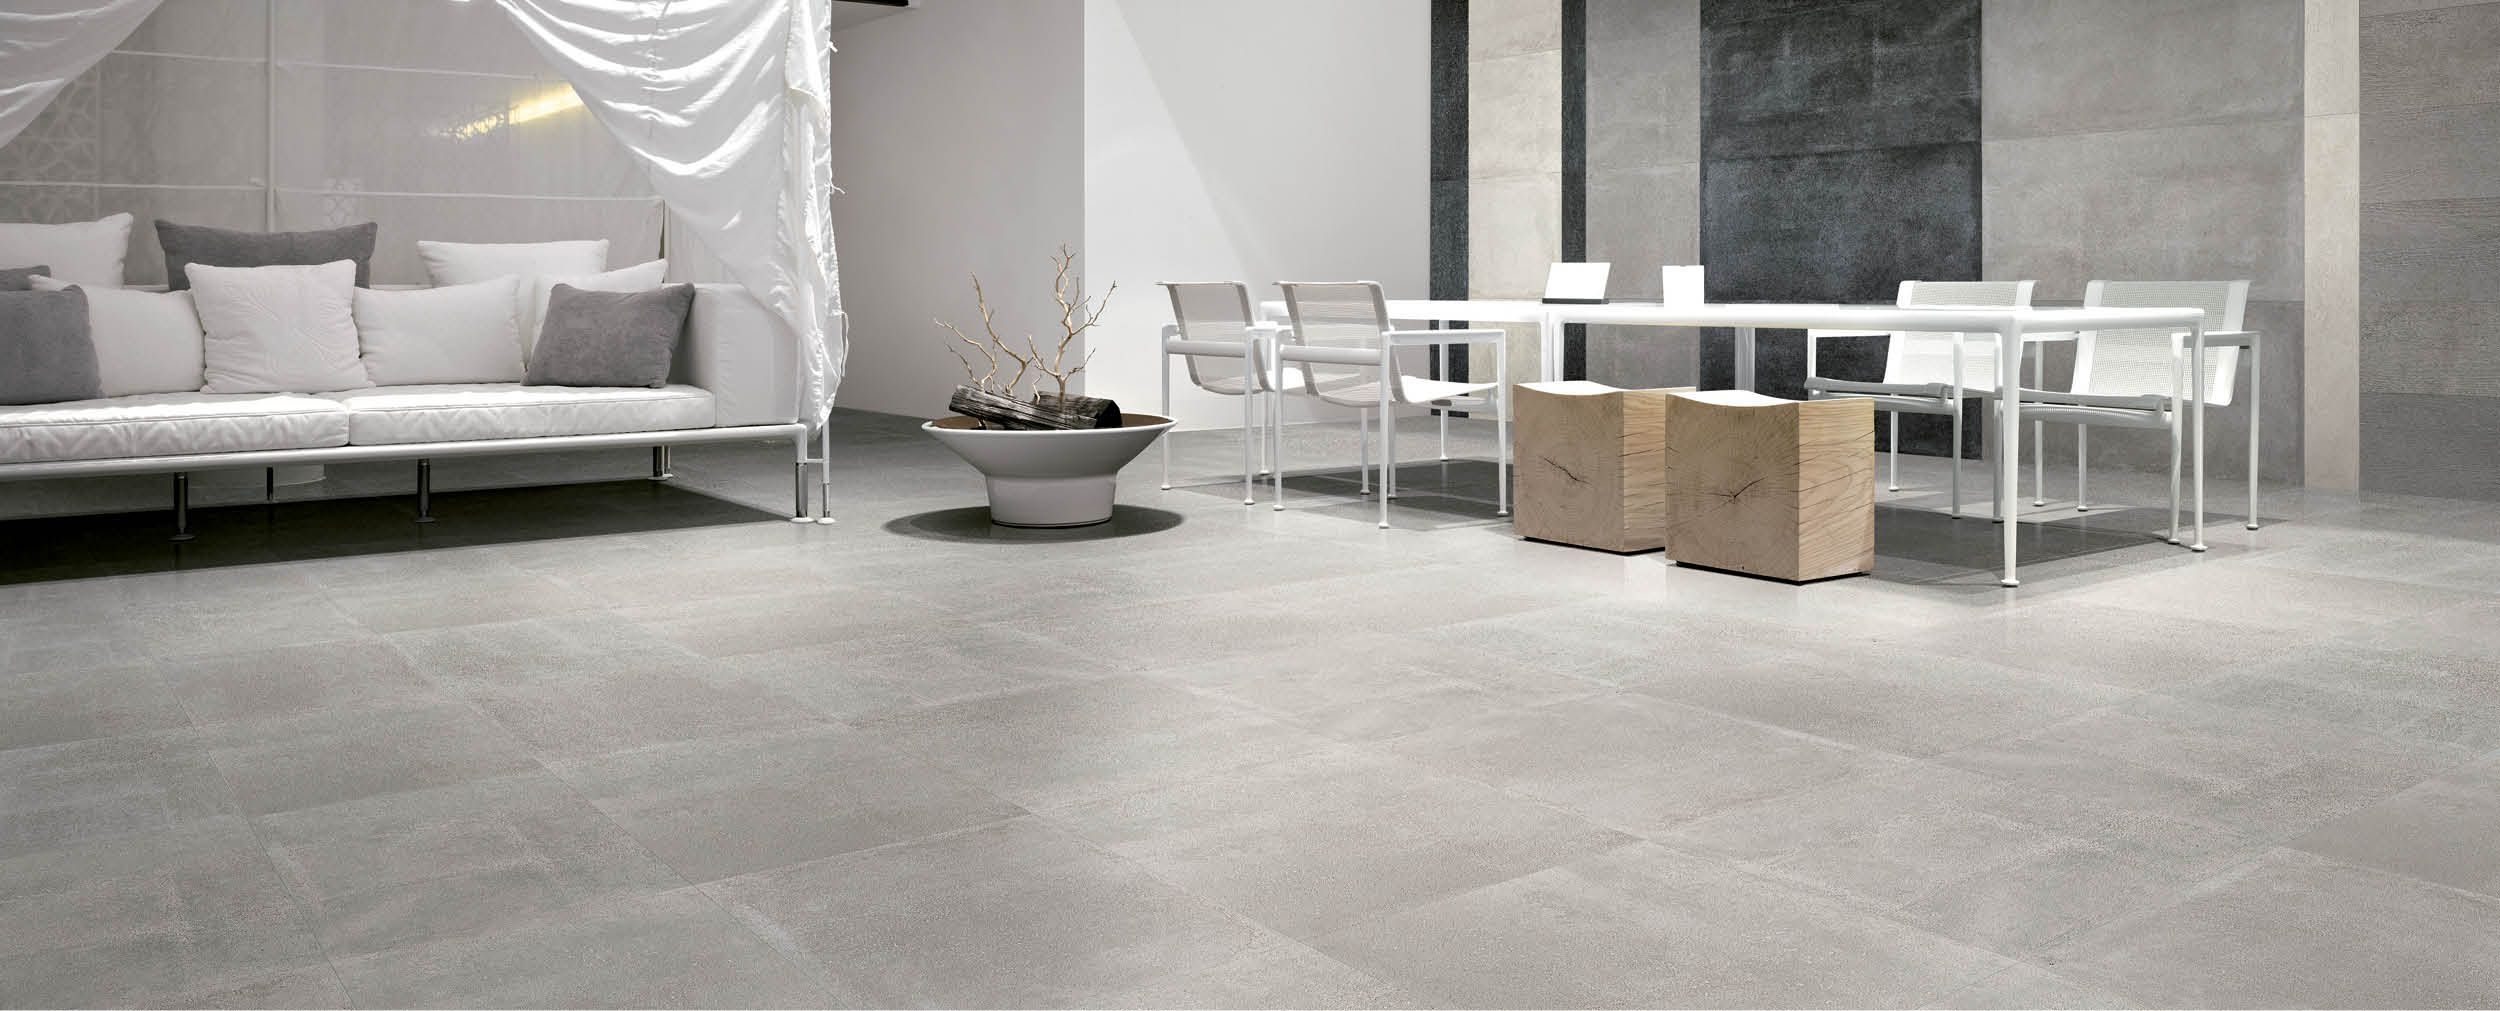 Cement bathroom tiles - Floor Tiles Concrete Traditional Wood Marble And Large Format Tiles